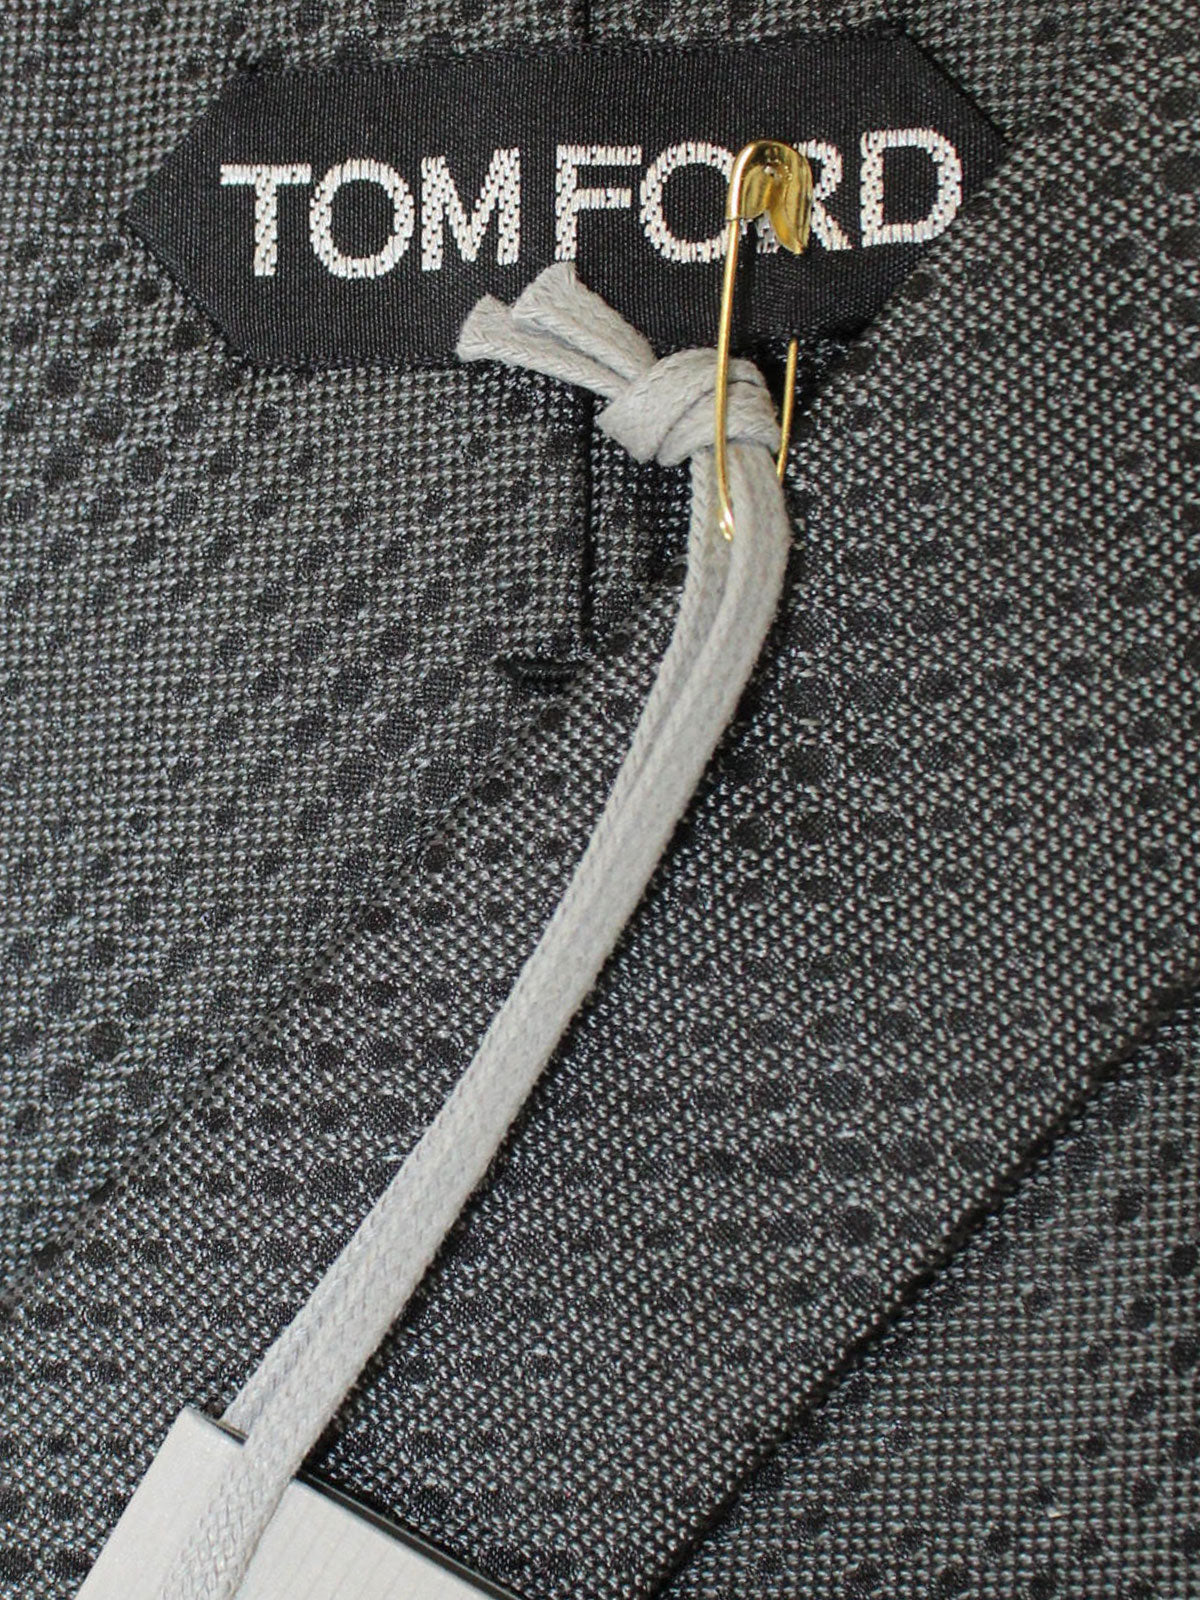 Tom Ford Tie Dark Gray Glencheck Design